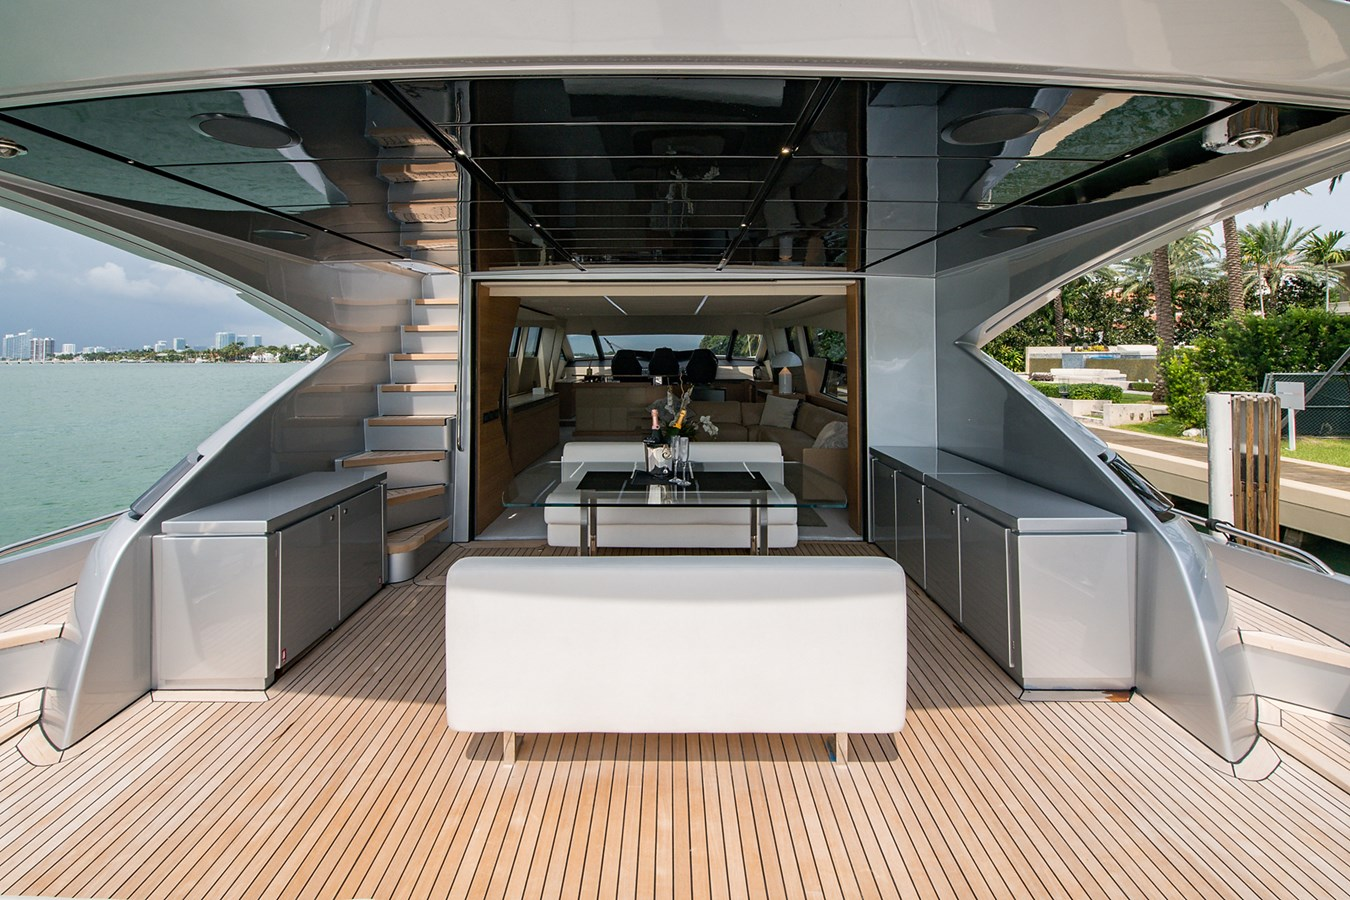 Incognito_Aft deck13 2012 PERSHING  Motor Yacht 2810233